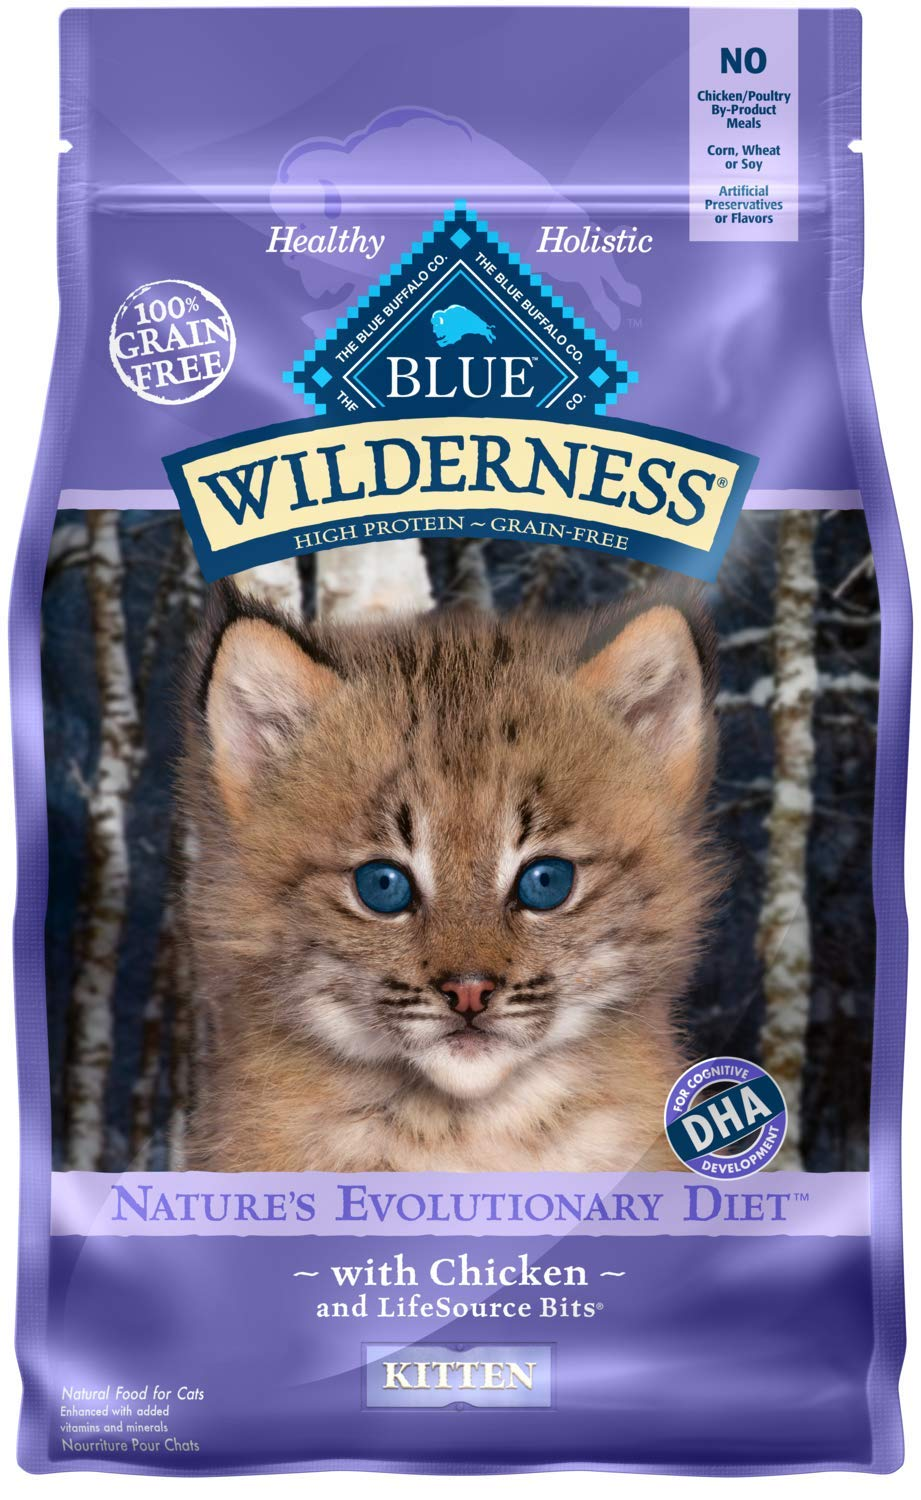 Blue Wilderness High Protein Grain Free Cat Food